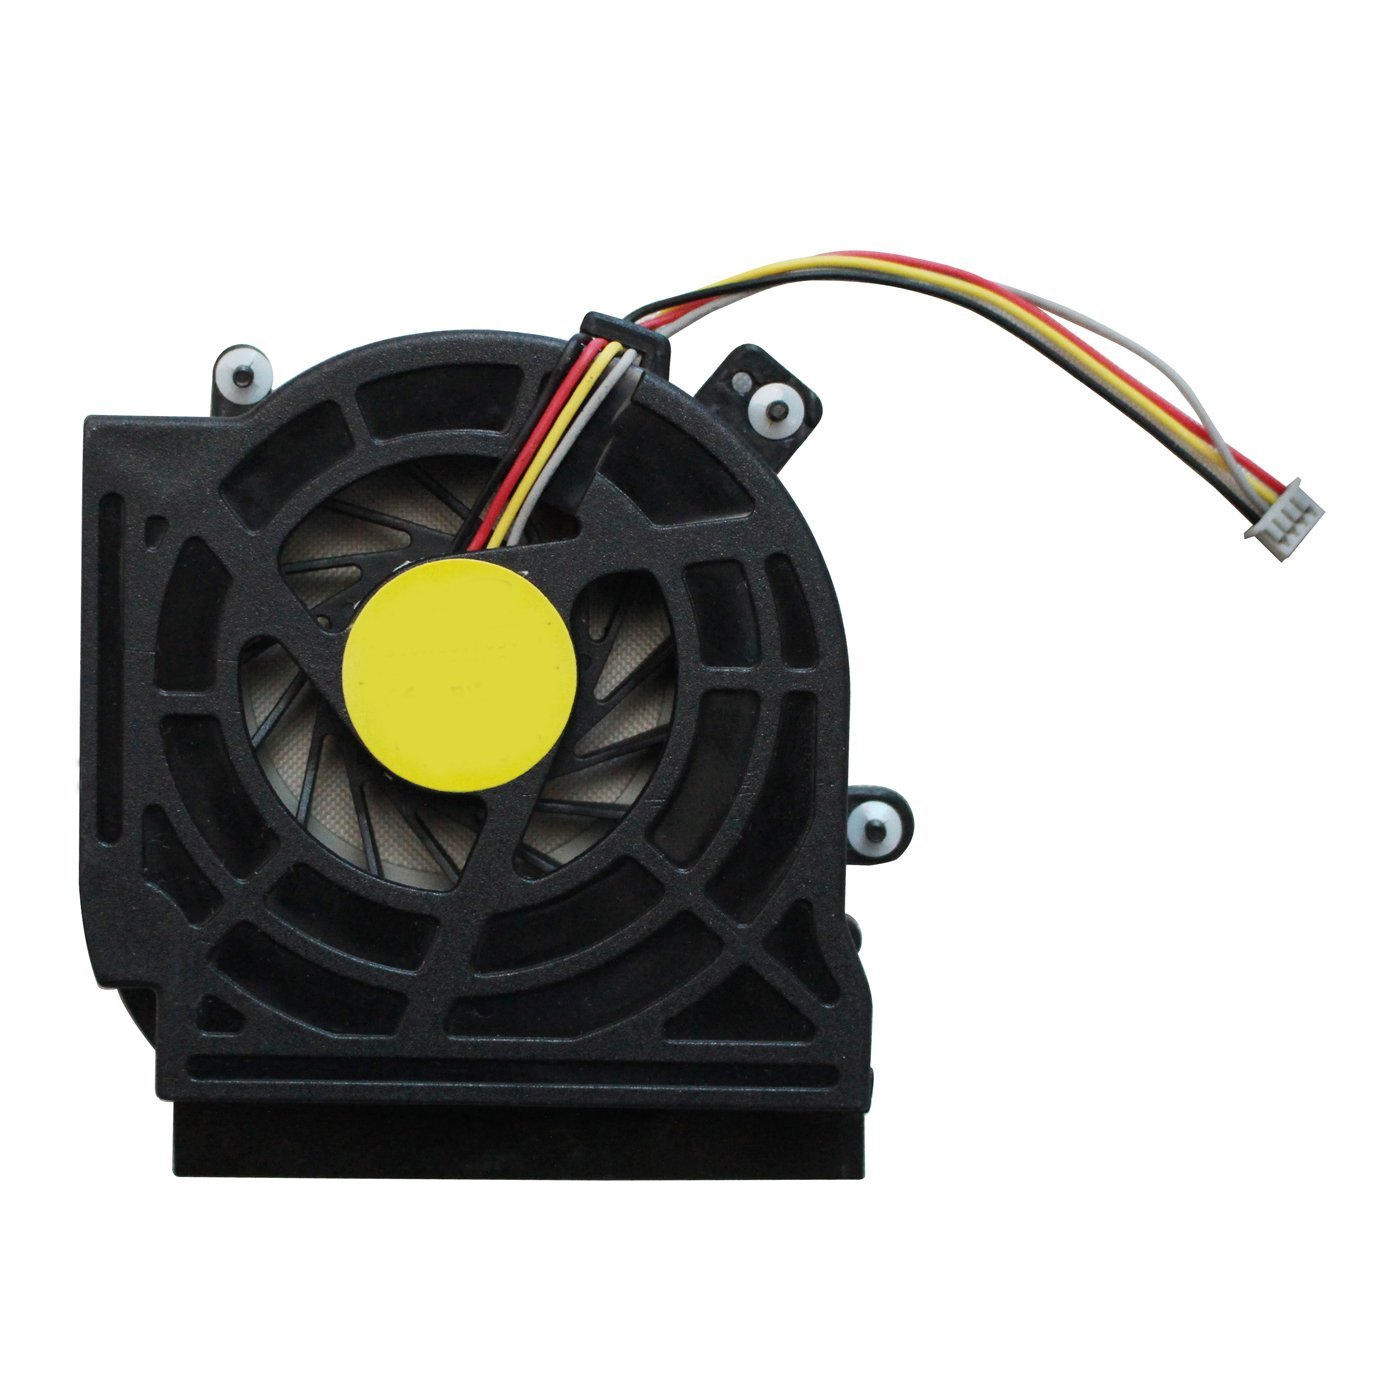 Replacement CPU Cooling Fan for Lenovo IBM ThinkPad E430 E430C E435 E530 E530C E535 Laptop